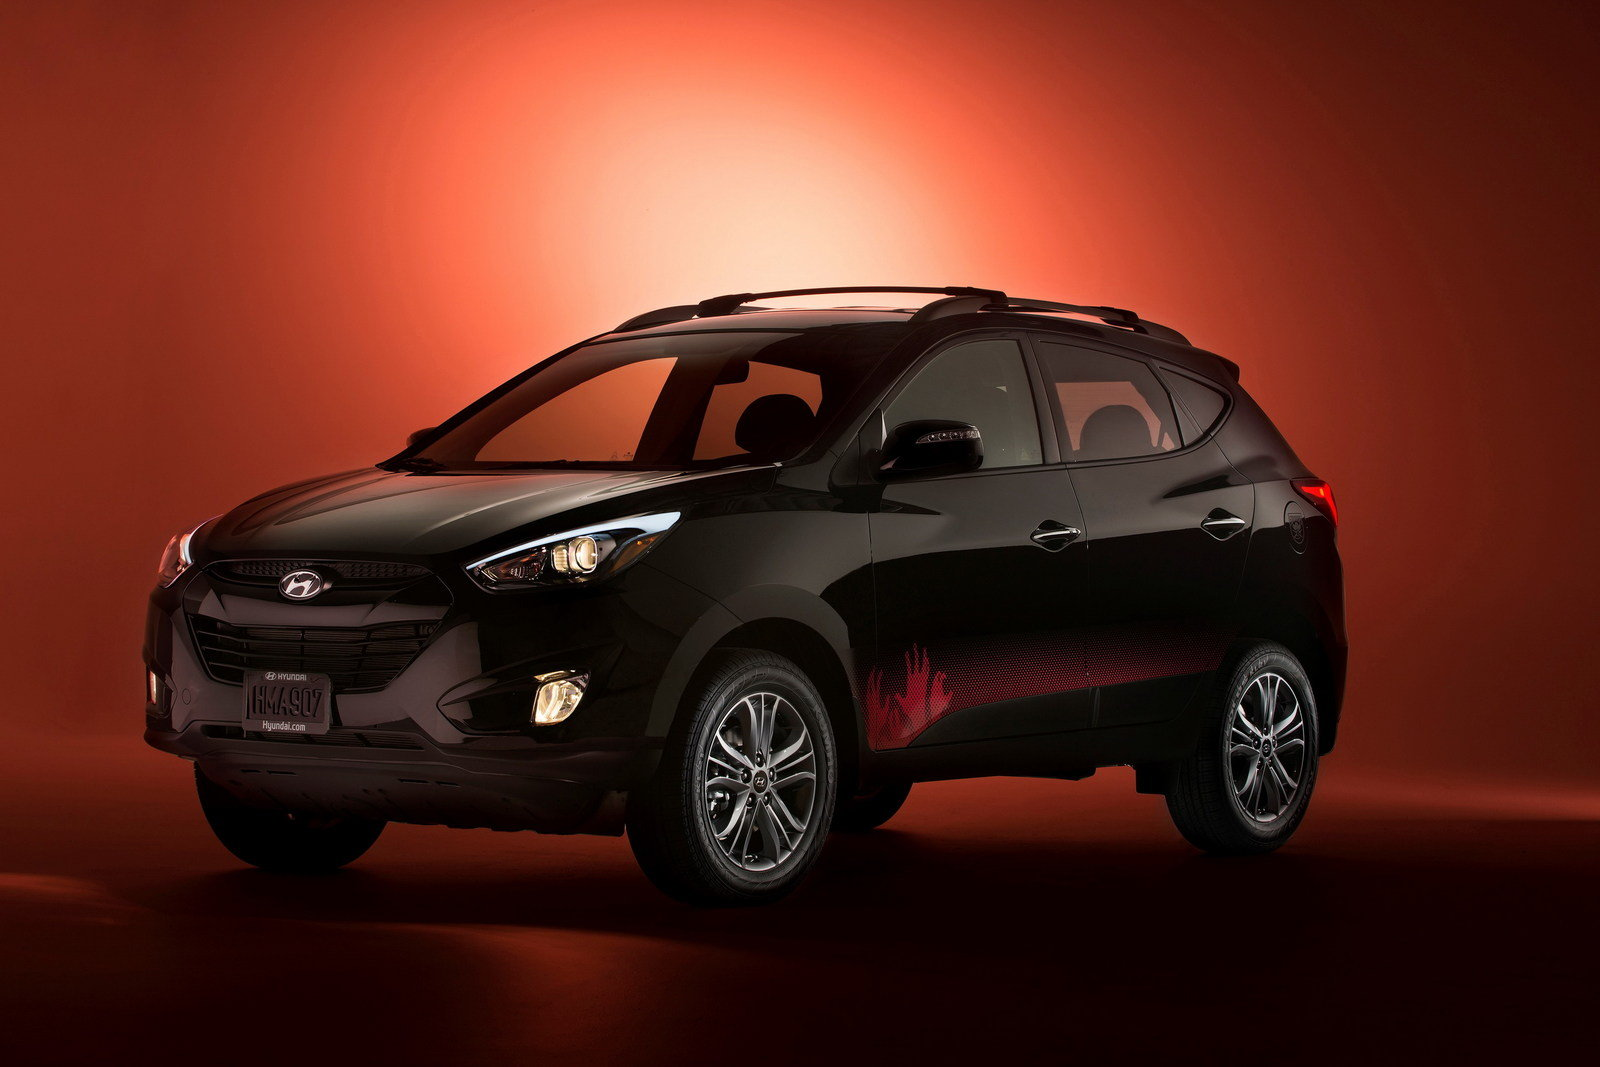 2014 hyundai tucson walking dead edition review top speed. Black Bedroom Furniture Sets. Home Design Ideas